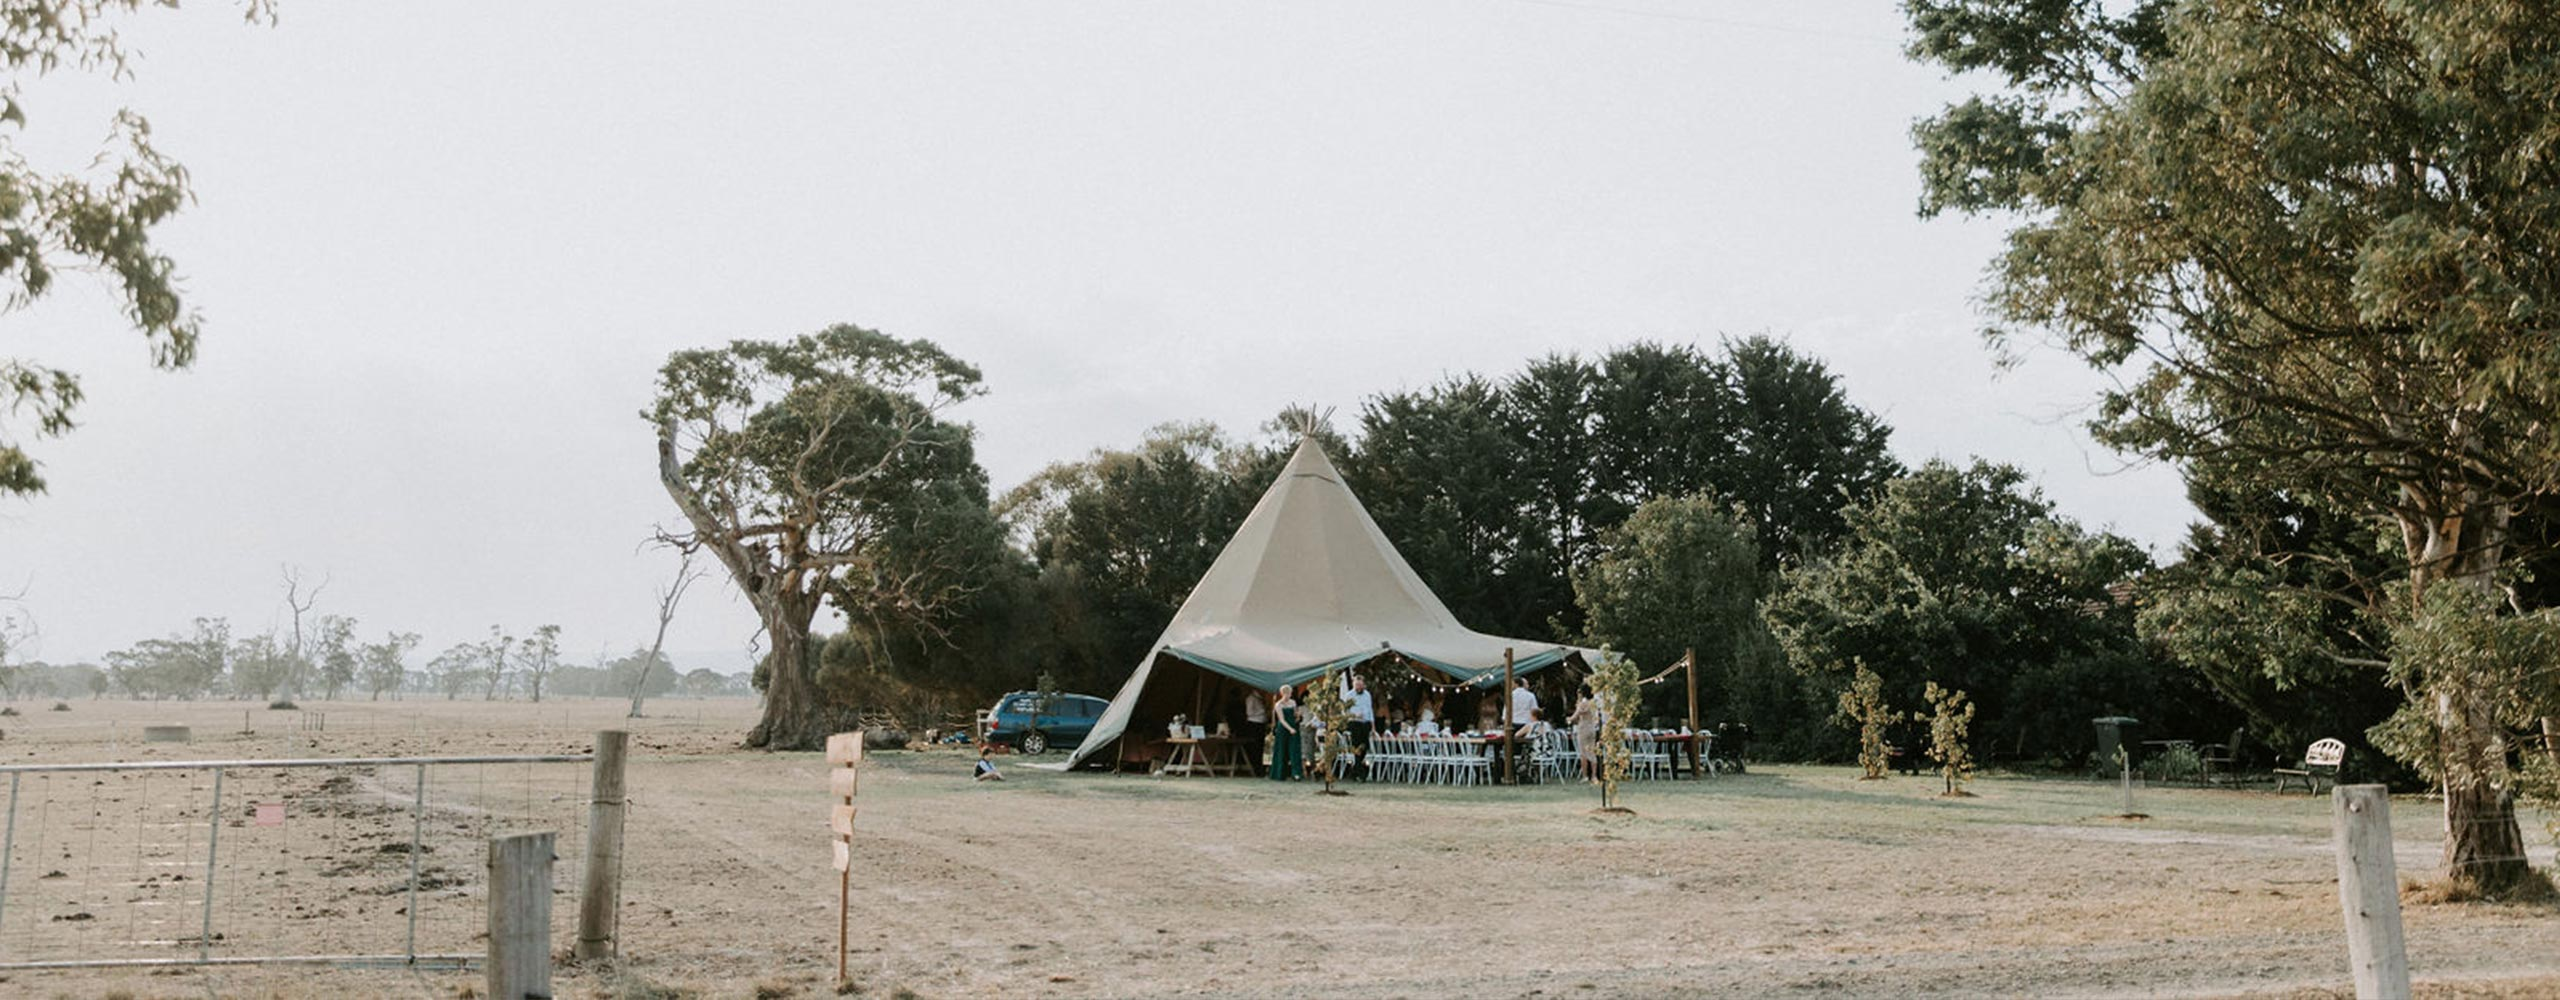 Giant tipi at paddock wedding in Victoria